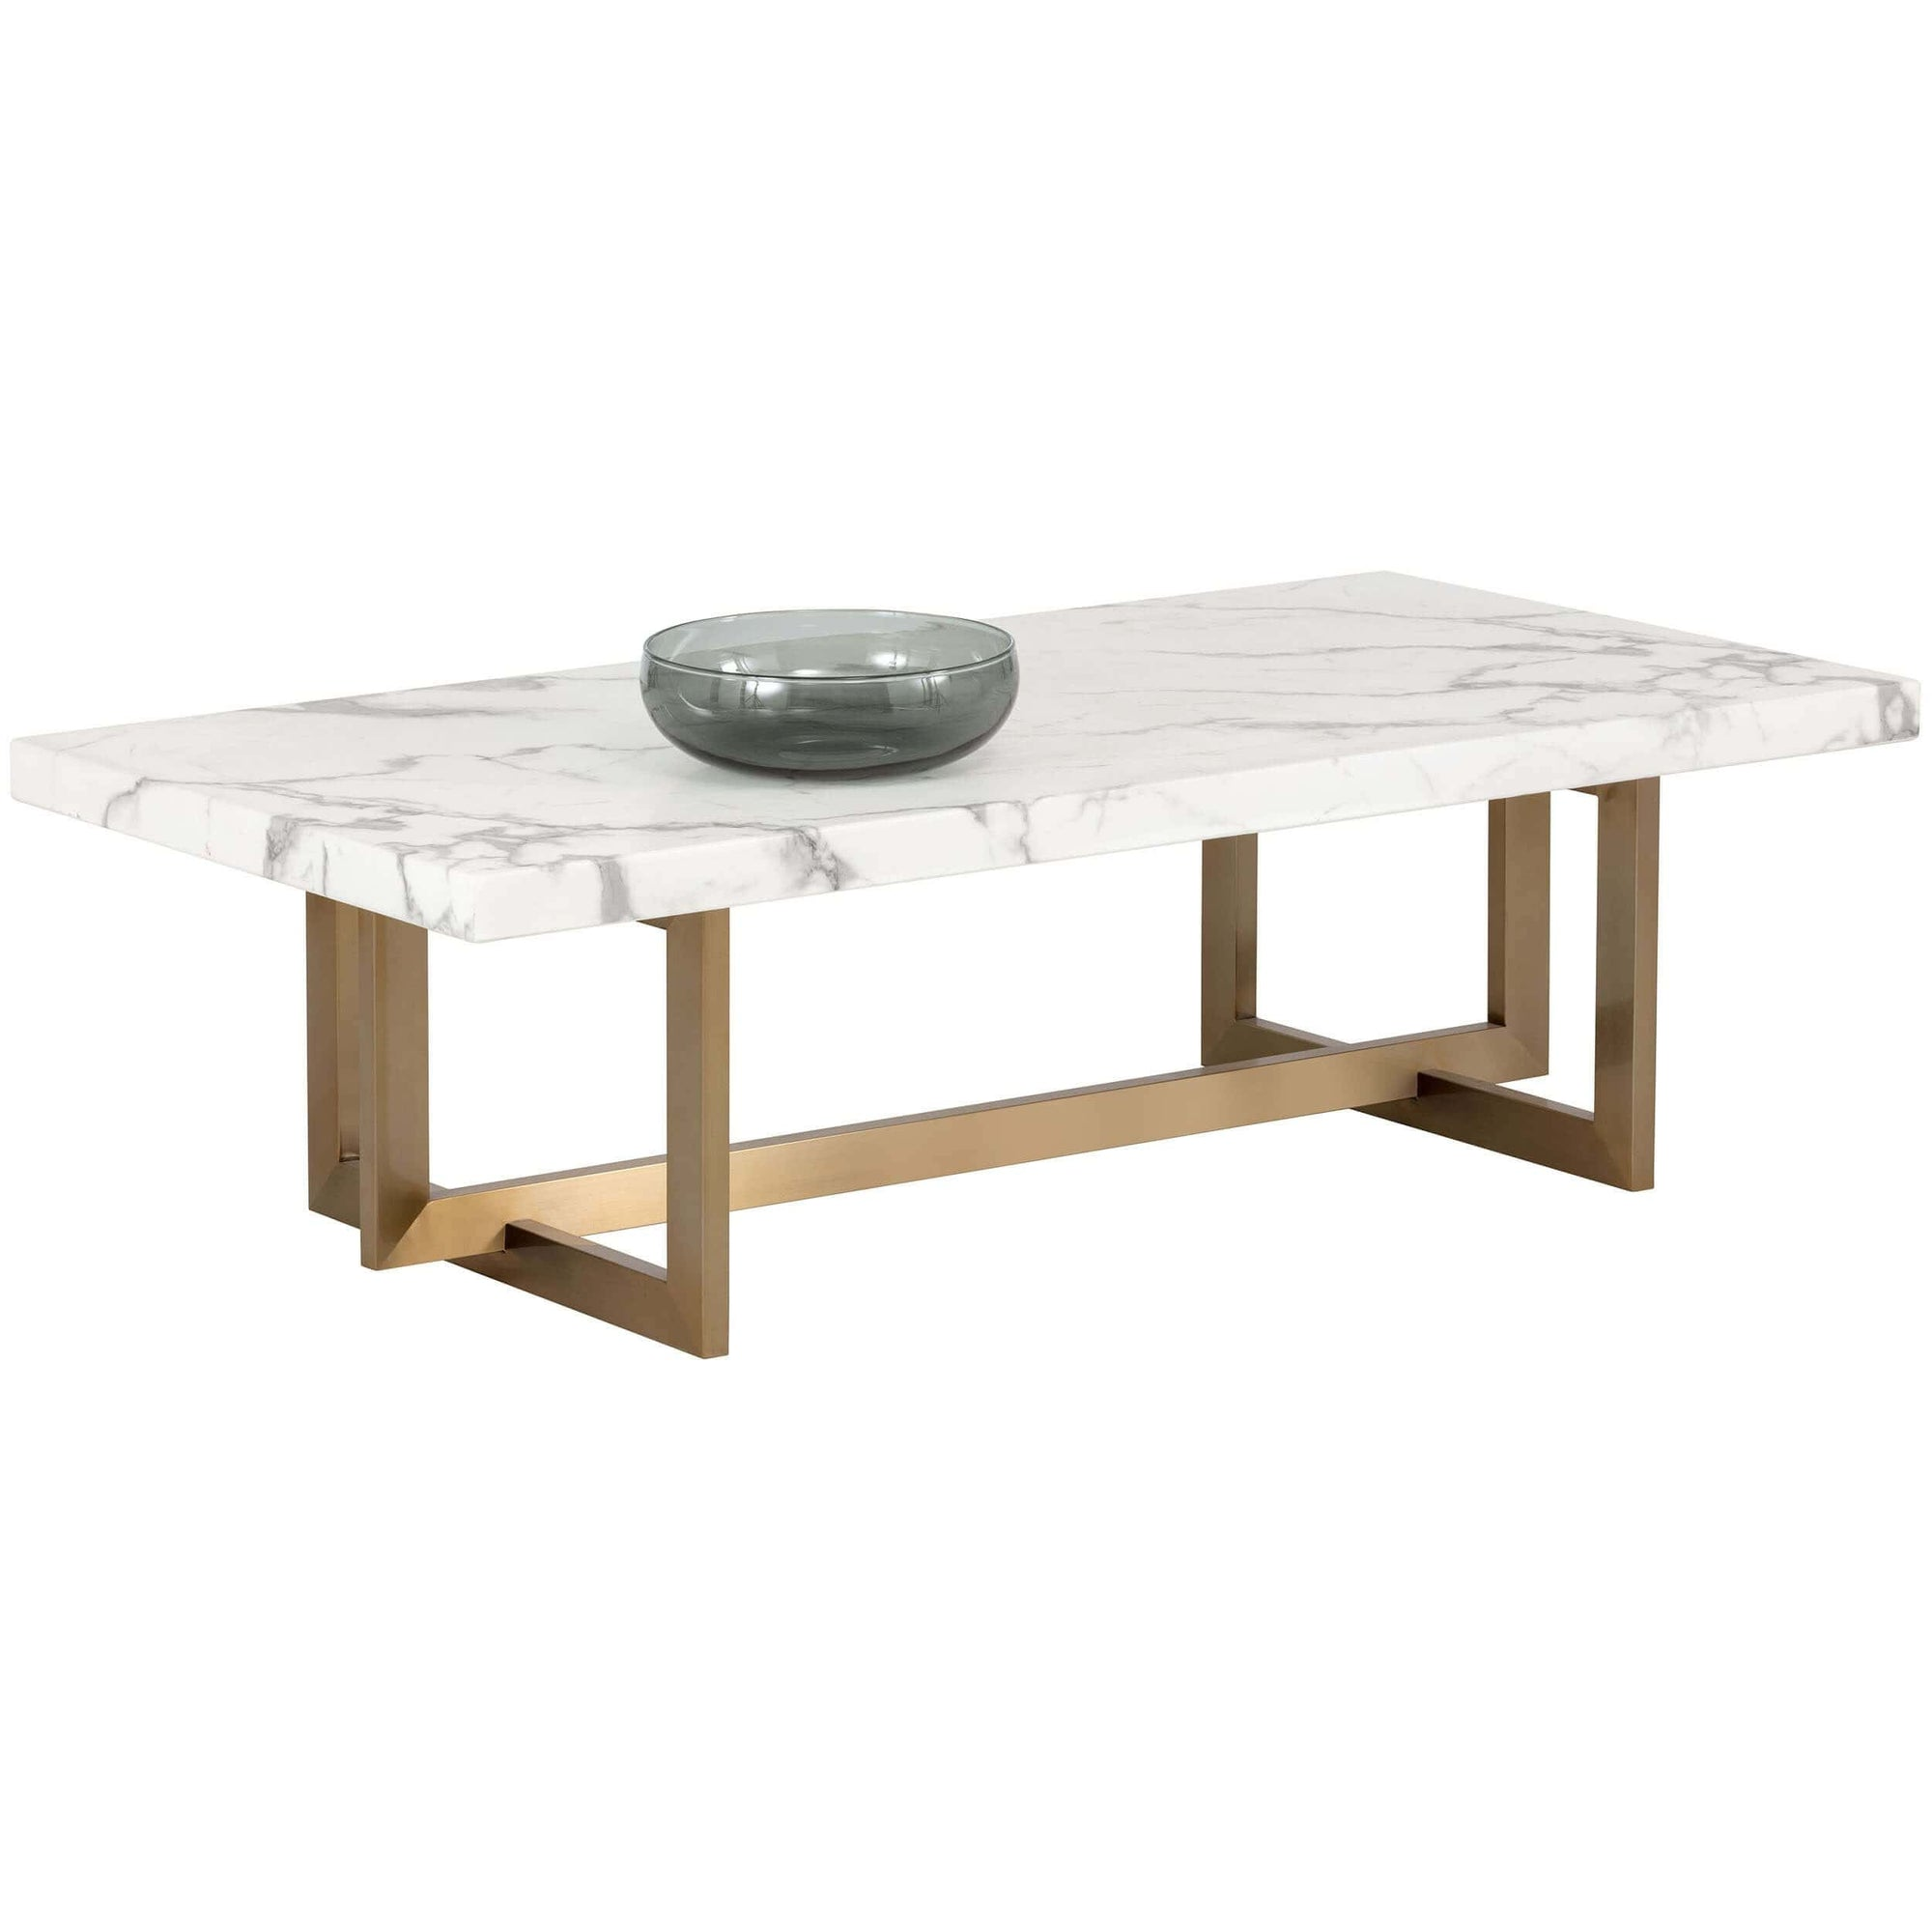 Rosellen Coffee Table Antique Brass White Marble High Fashion Home